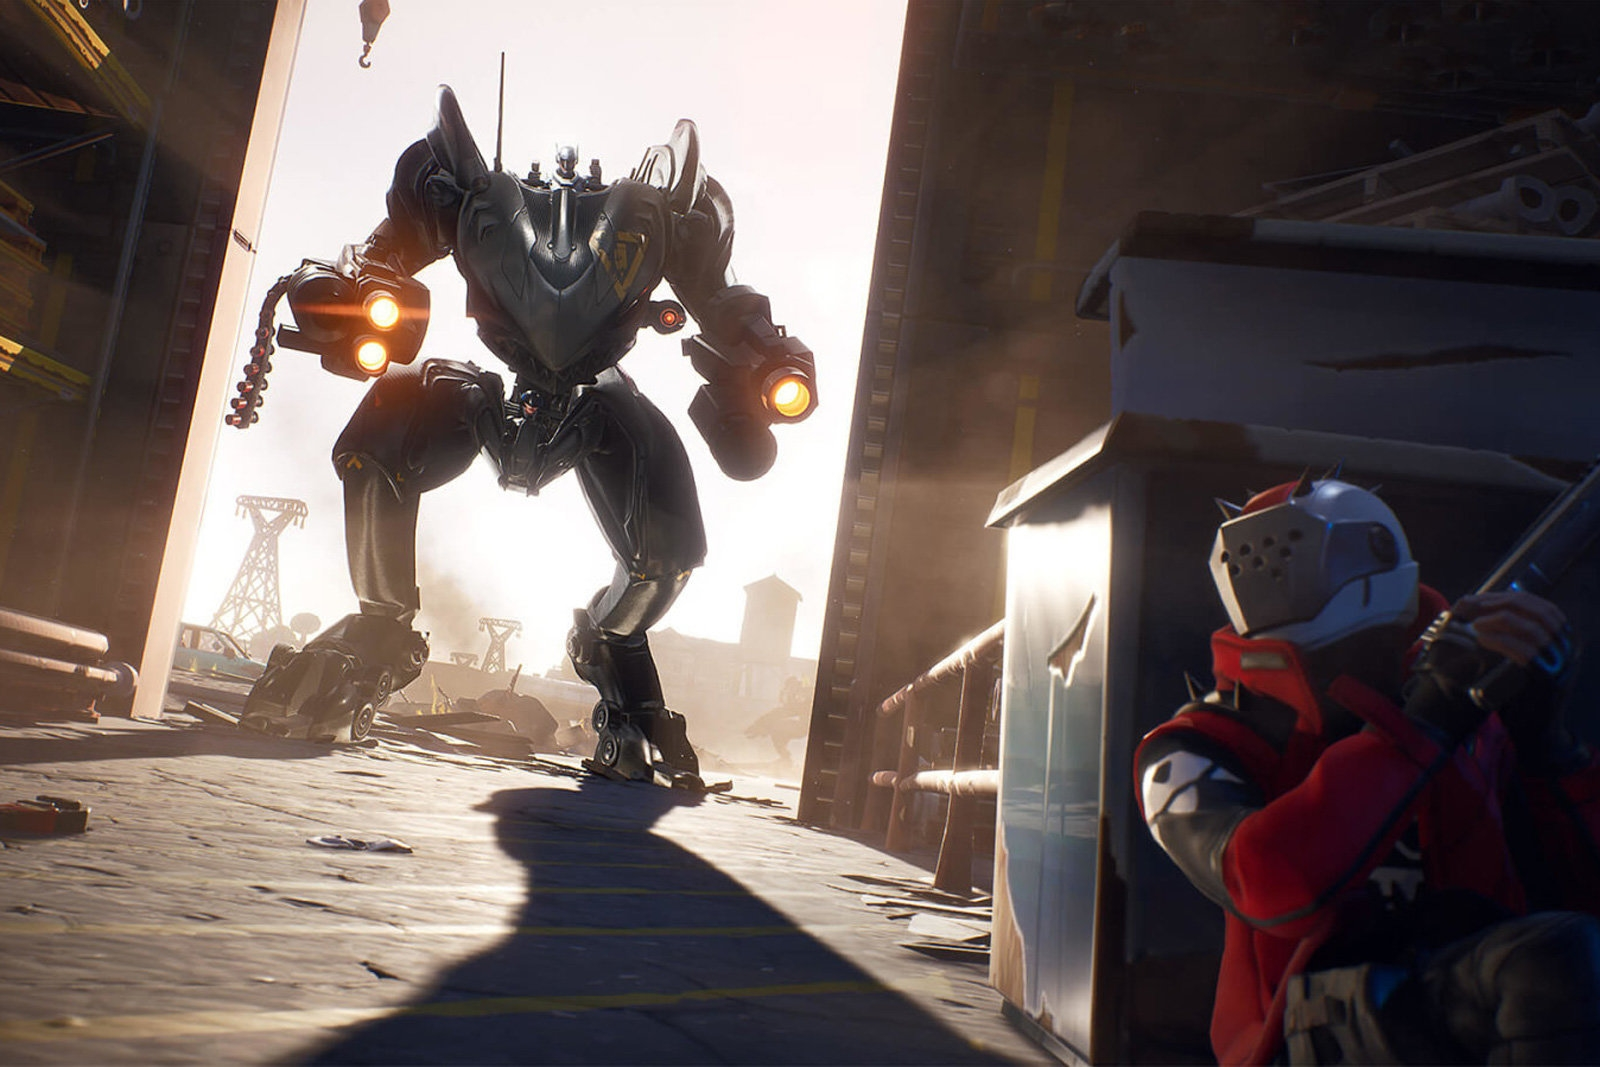 Epic tones down overpowered mechs in 'Fortnite' competitive modes   DeviceDaily.com